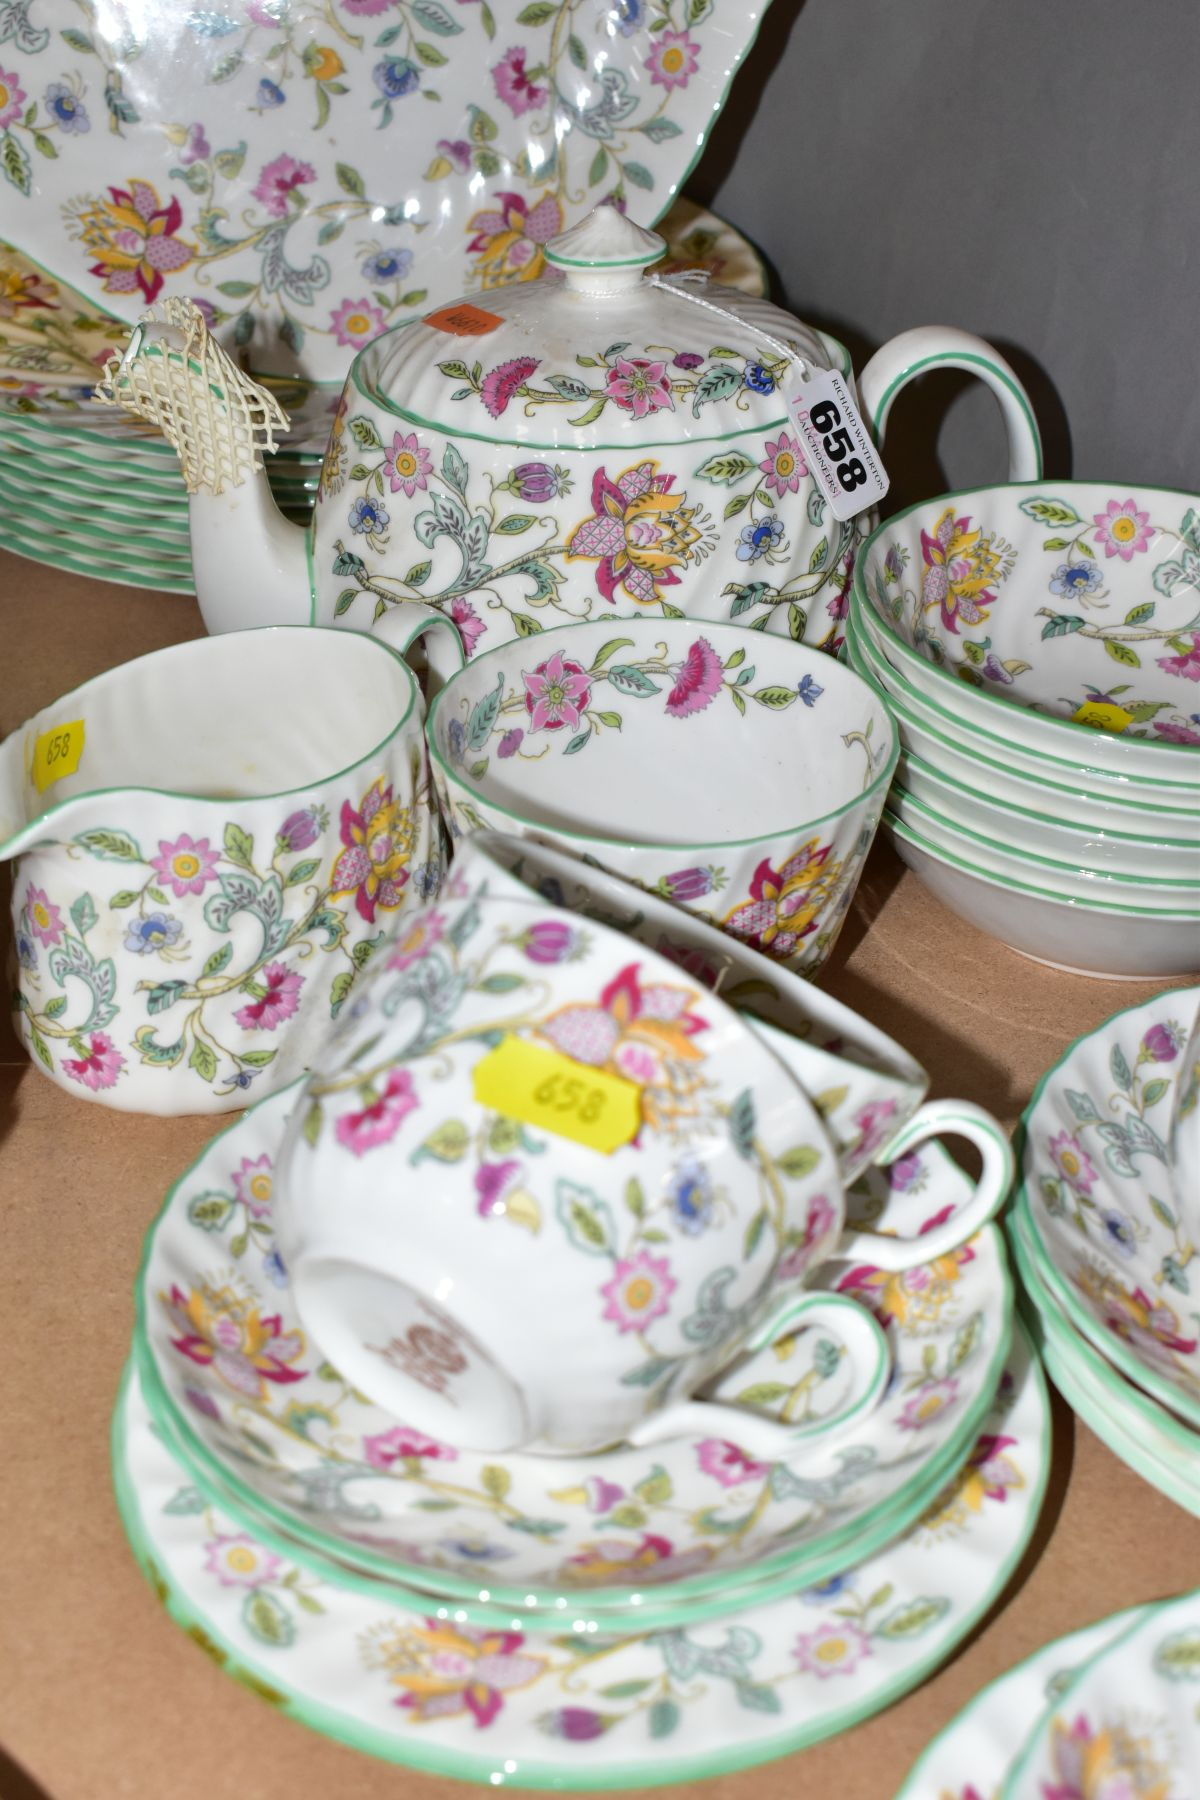 A MINTON 'HADDON HALL' PATTERN PART DINNER SERVICE, ETC, comprising teapot and cover, milk jug, - Image 3 of 6